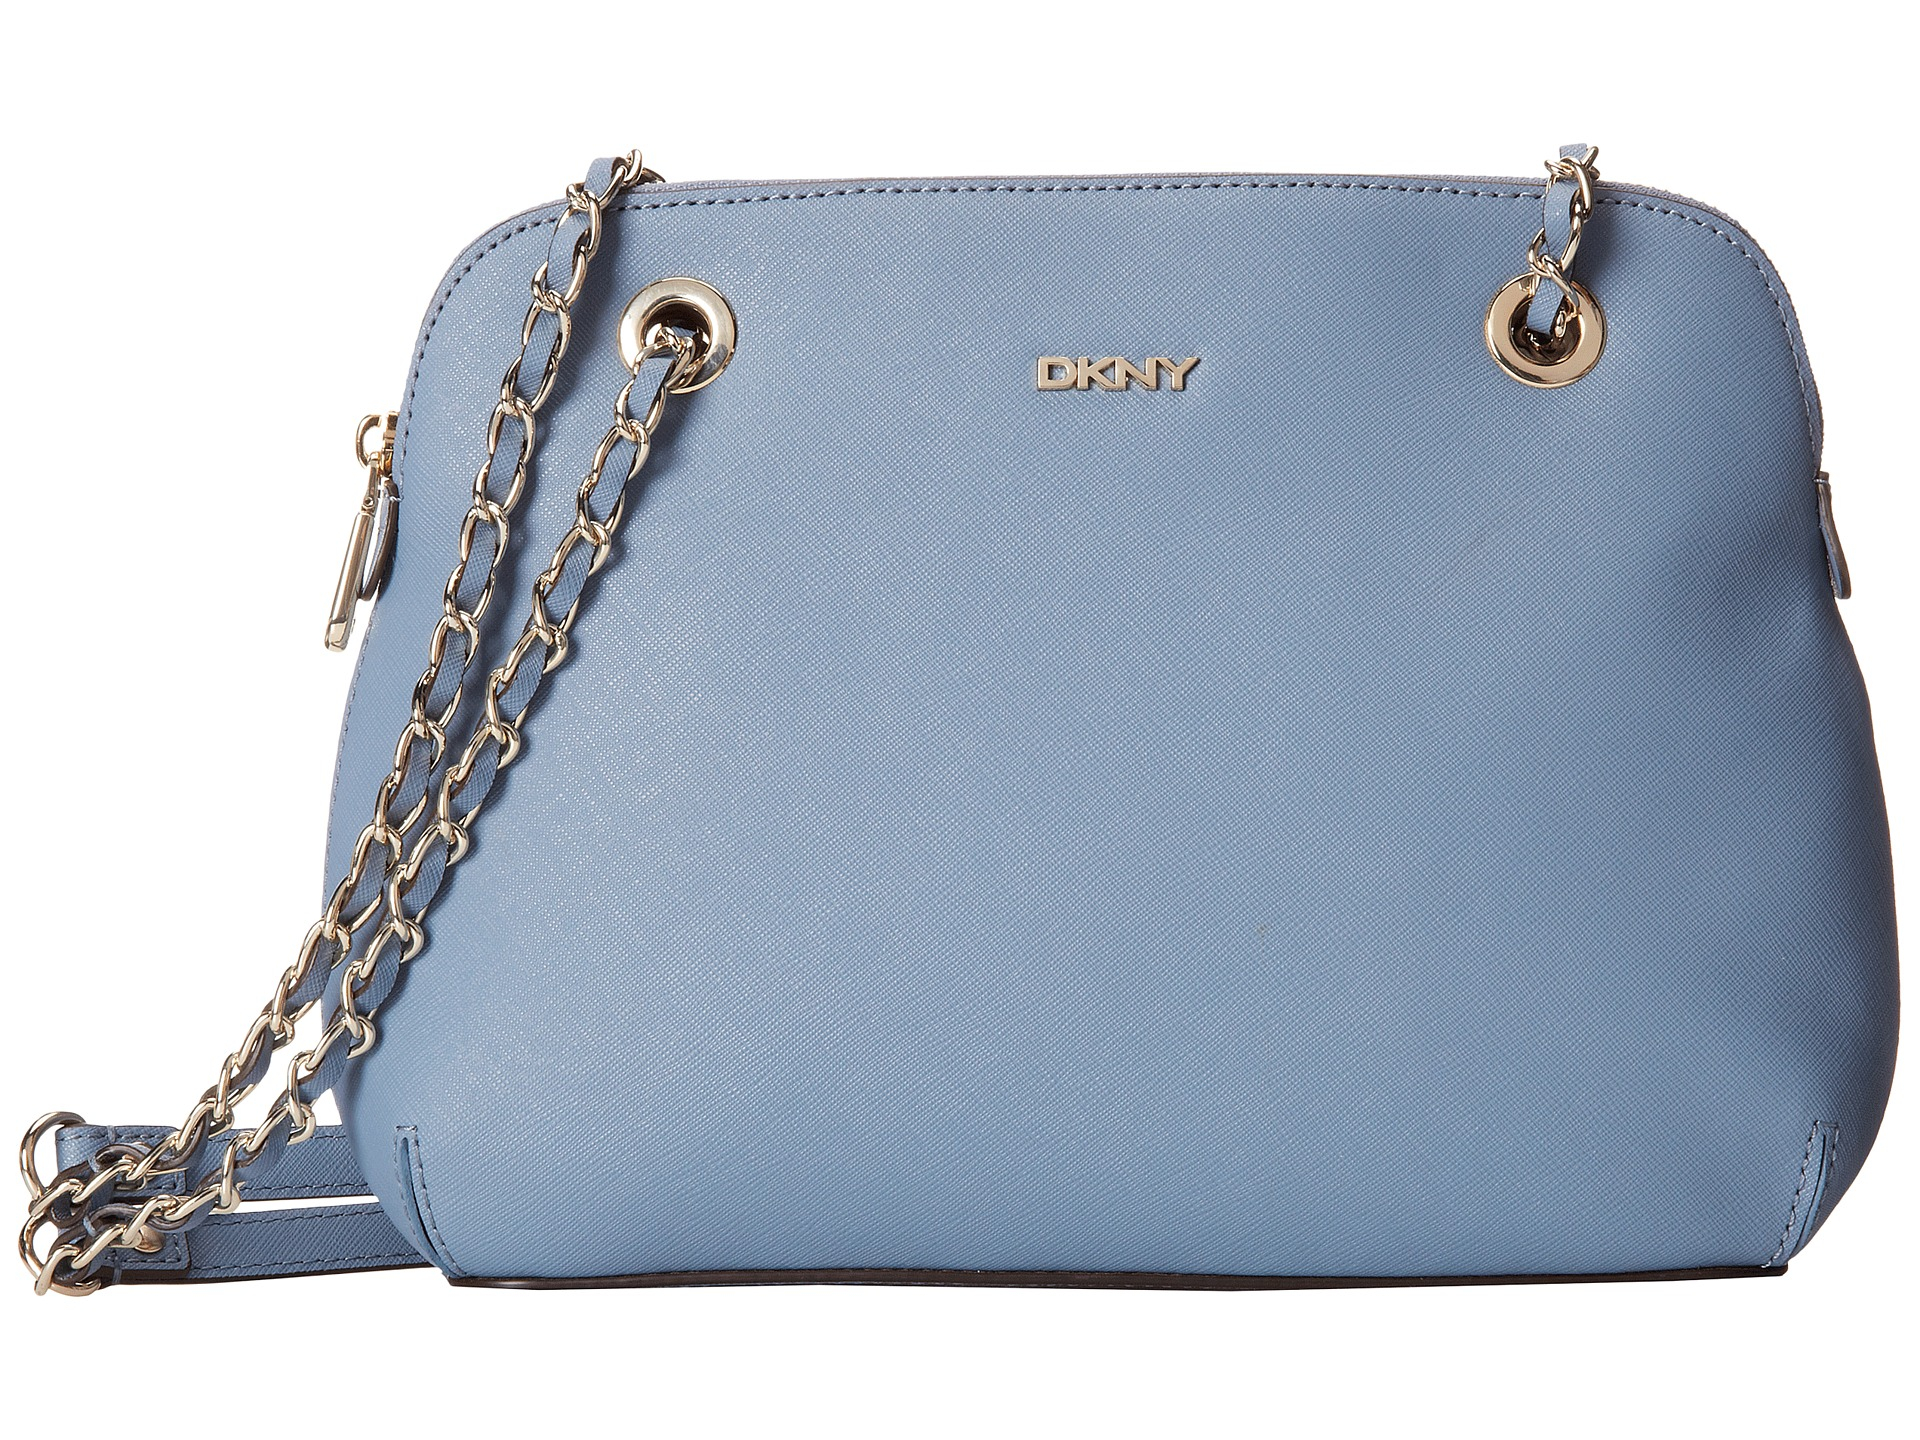 dkny bryant park saffiano leather round crossbody in blue light blue lyst. Black Bedroom Furniture Sets. Home Design Ideas